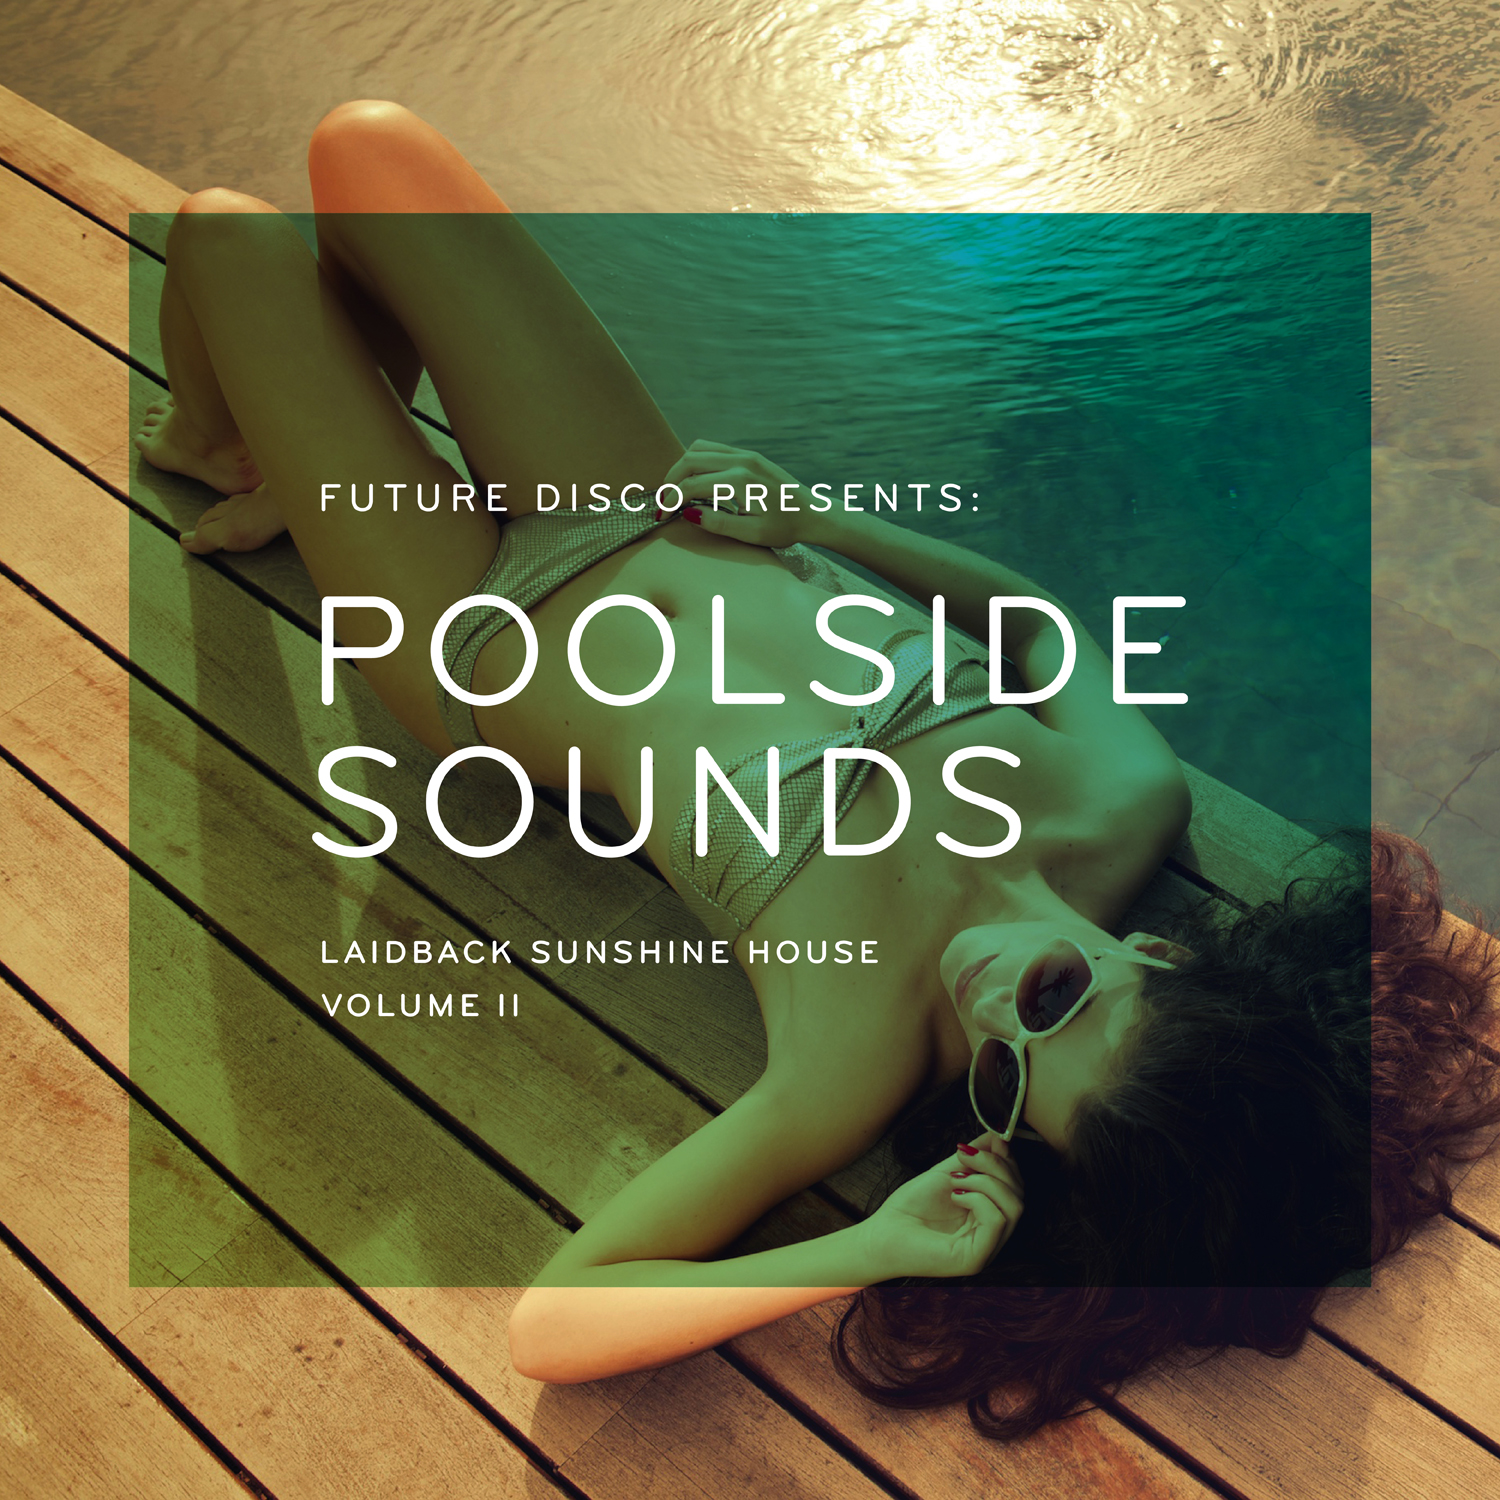 Future Disco Presents: Poolside Sounds Volume II